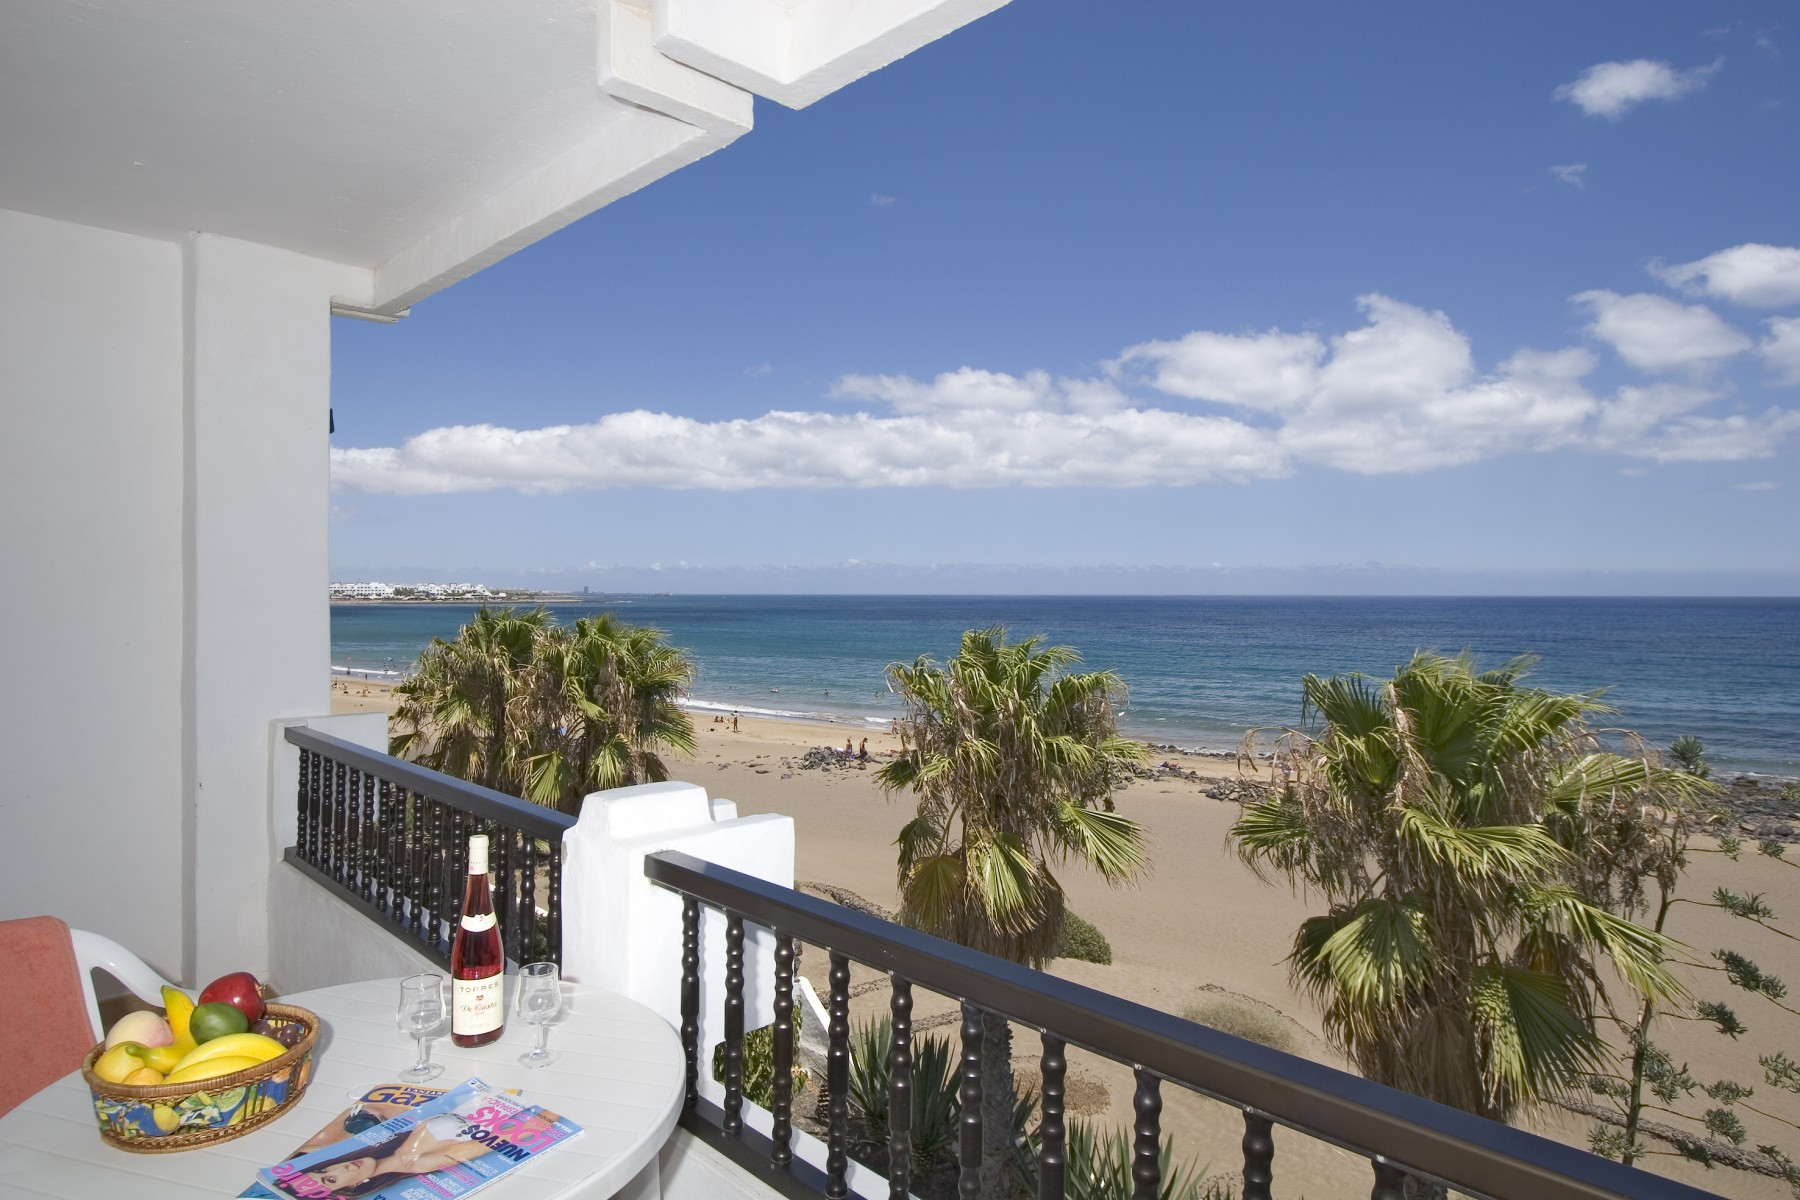 ... Apartment in Puerto del Carmen - Costa Luz block 6 beach-front 2 bed 2 ...